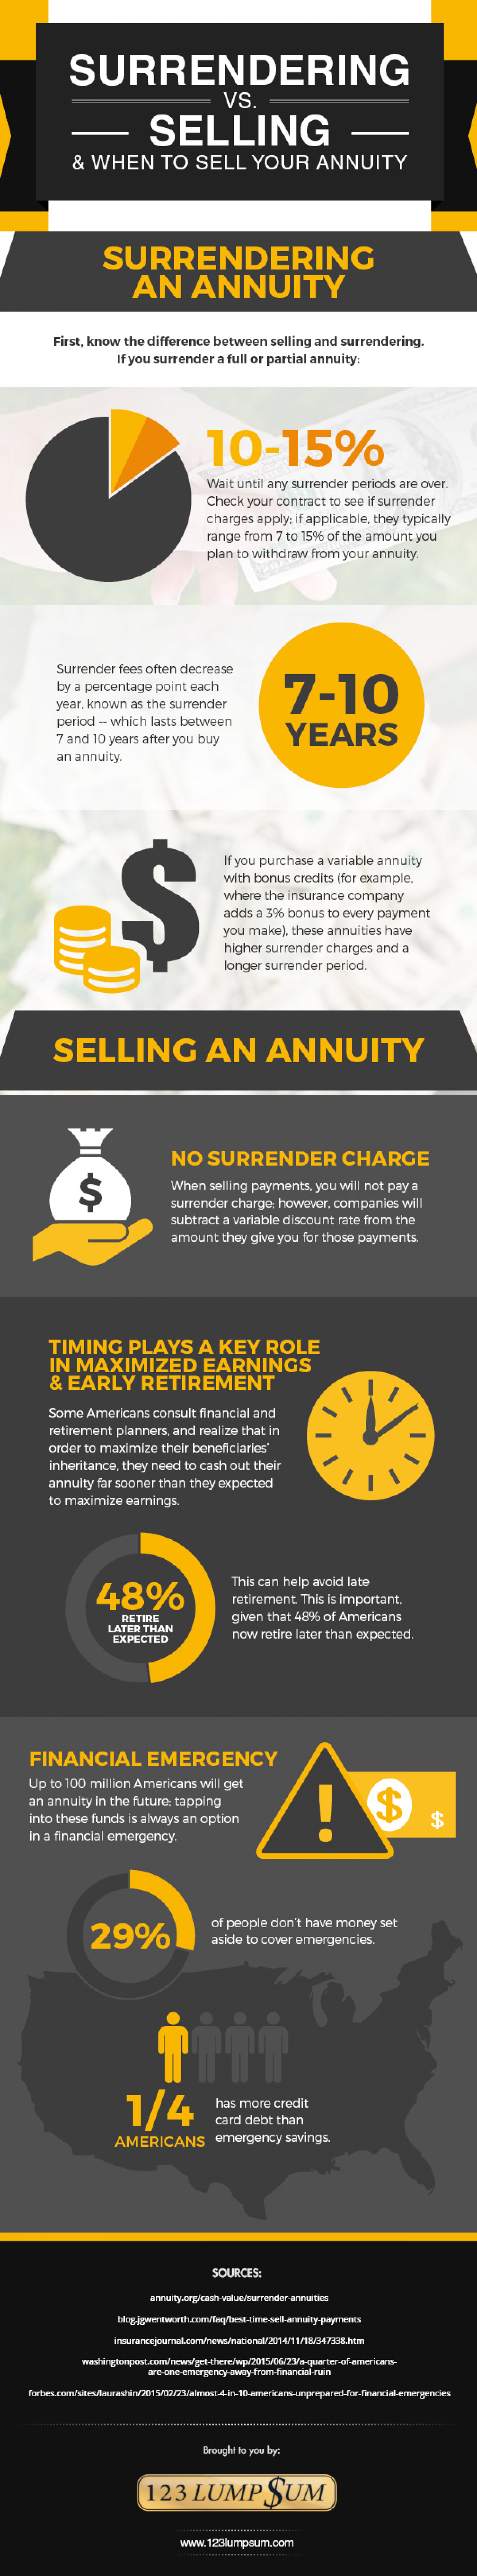 Surrendering vs. Selling Annuity Infographic